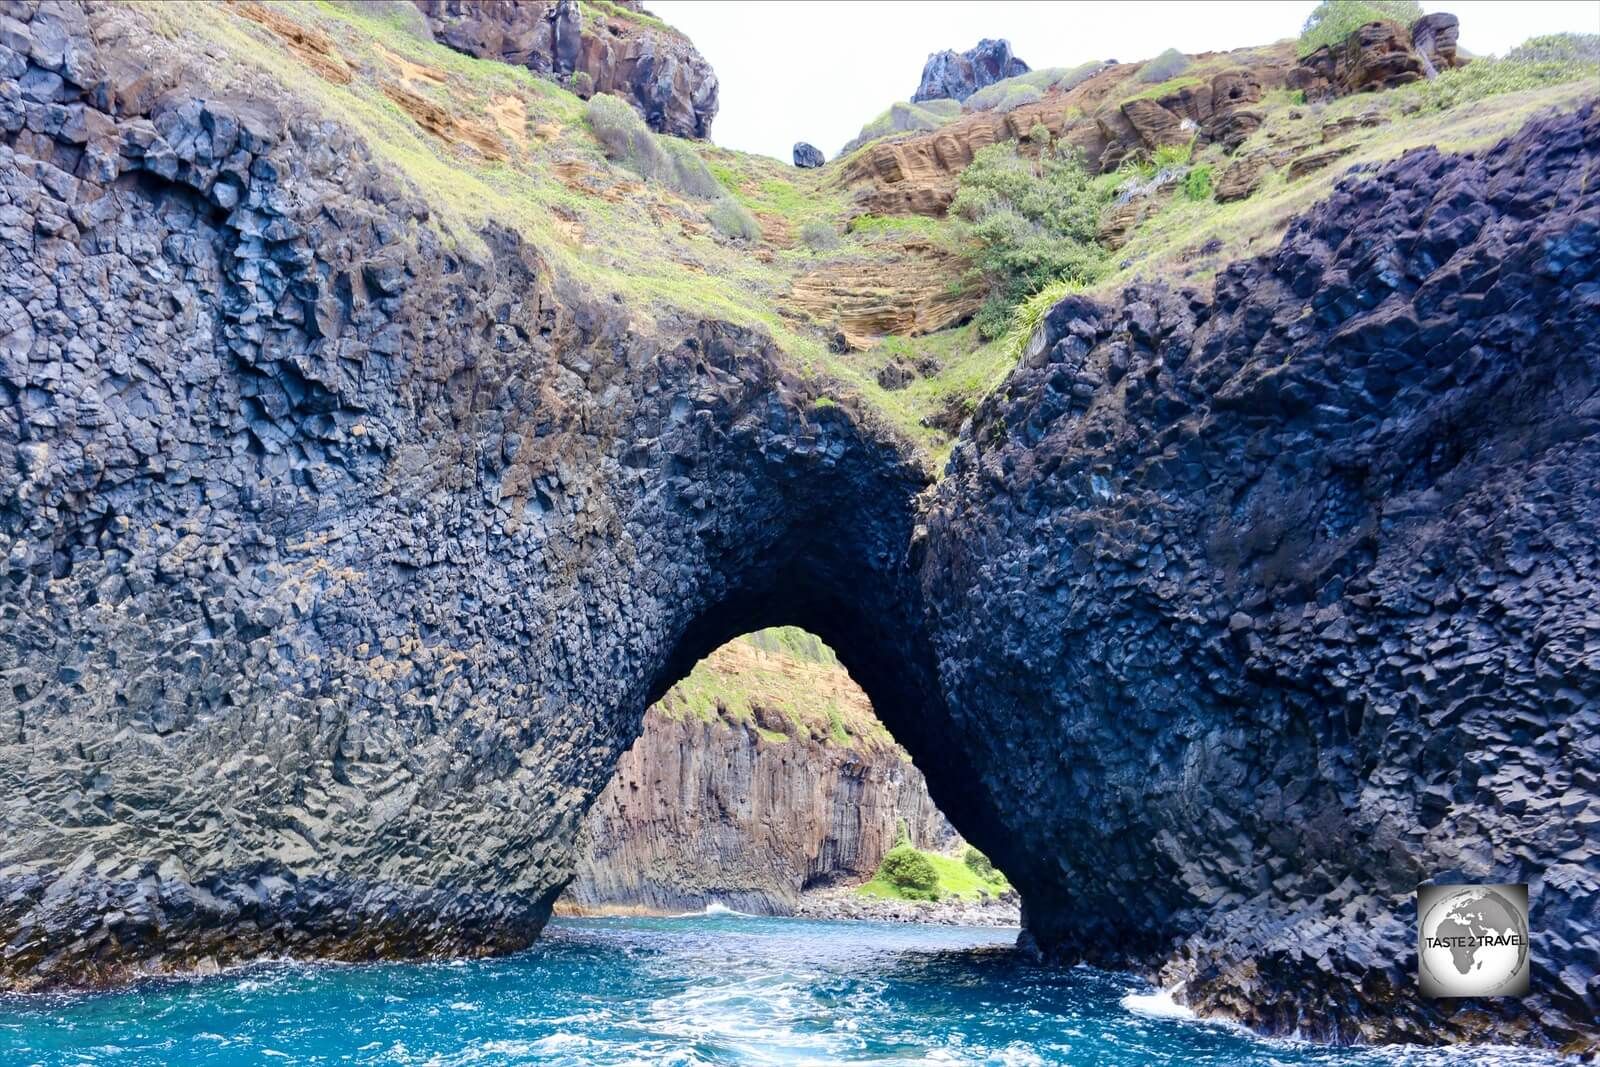 We passed through this spectacular archway on our way to our first dive site.